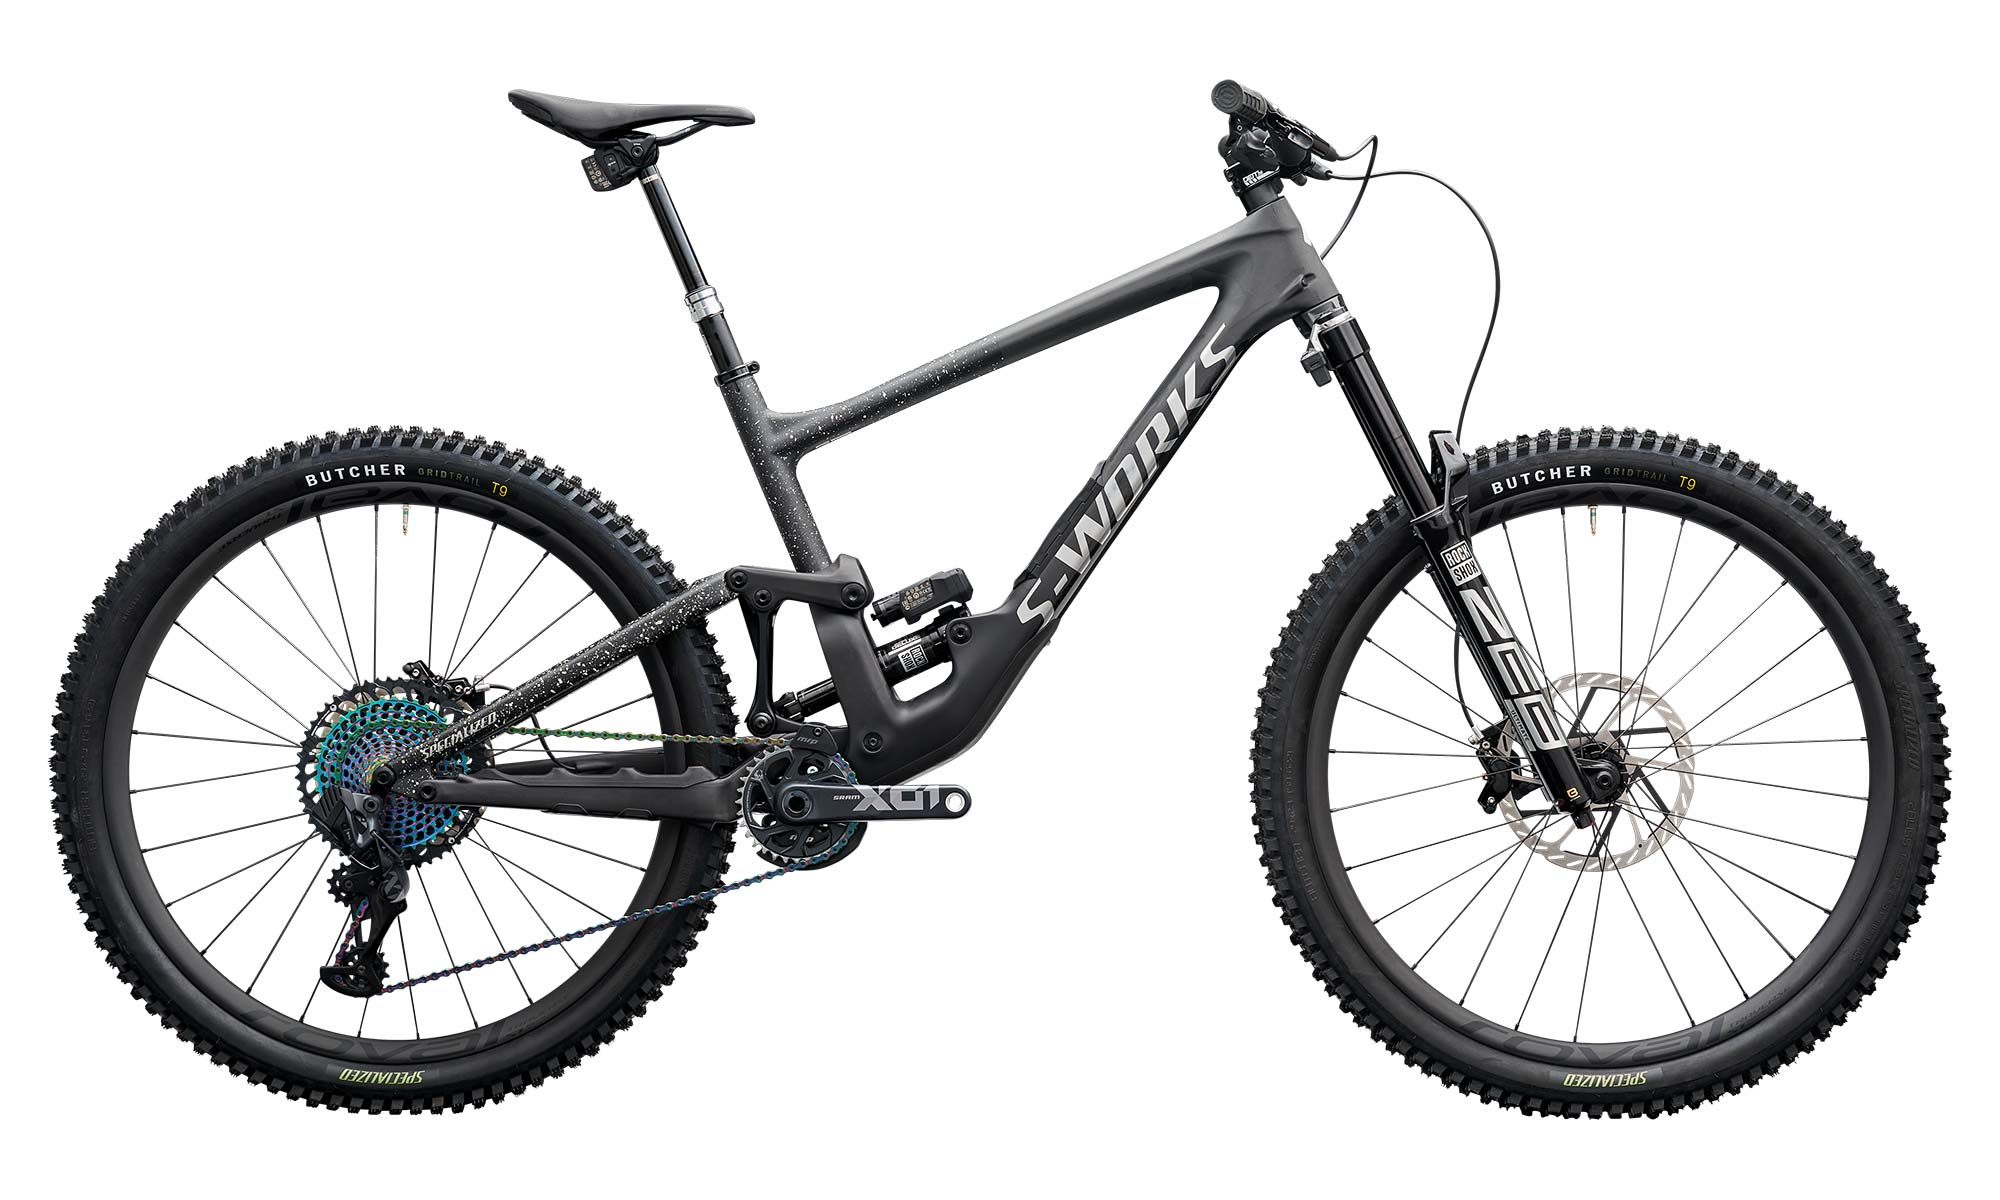 These are the mountain bikes launching now with RockShox Flight Attendant! thumbnail